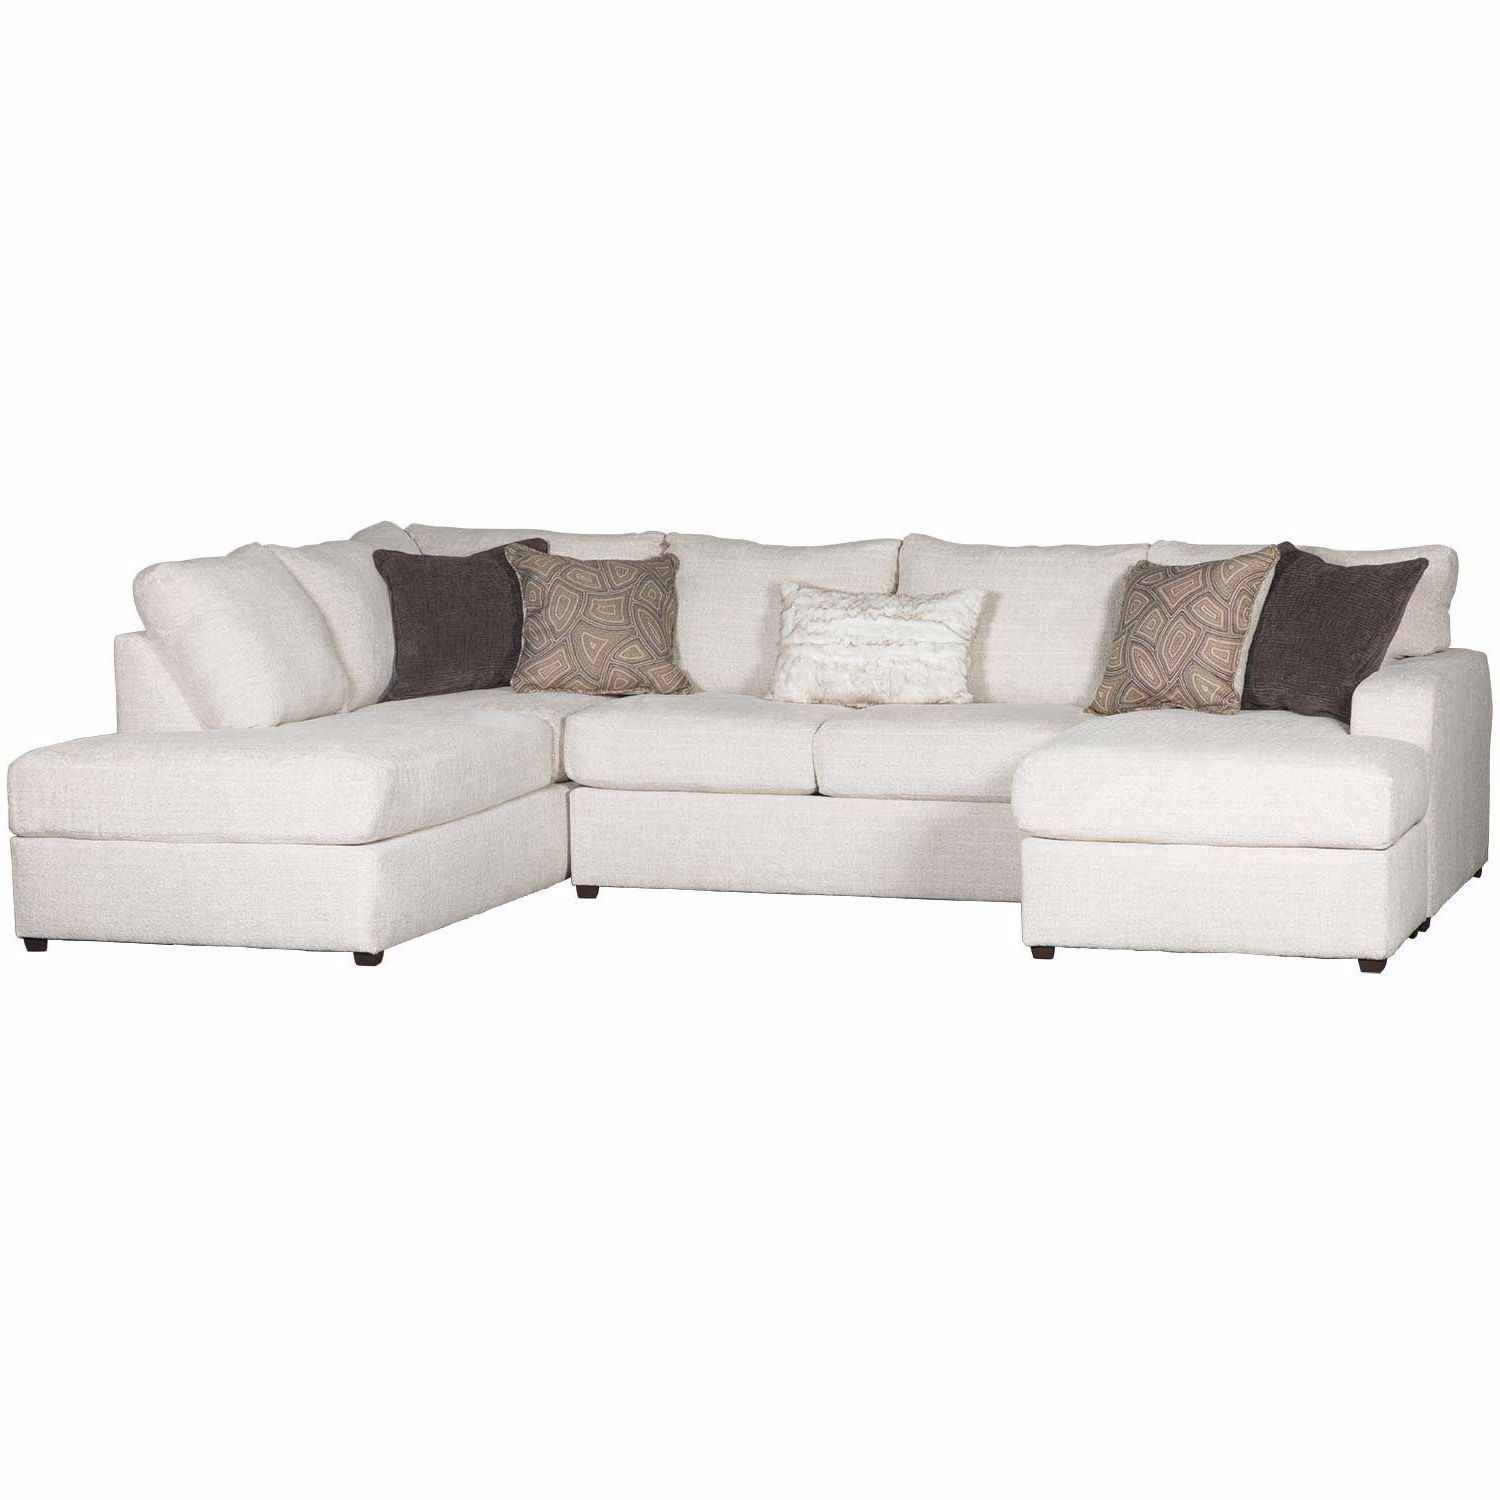 Amplify Beige 2 Piece Raf Sofa Chaise Sectional In 2020 Chaise